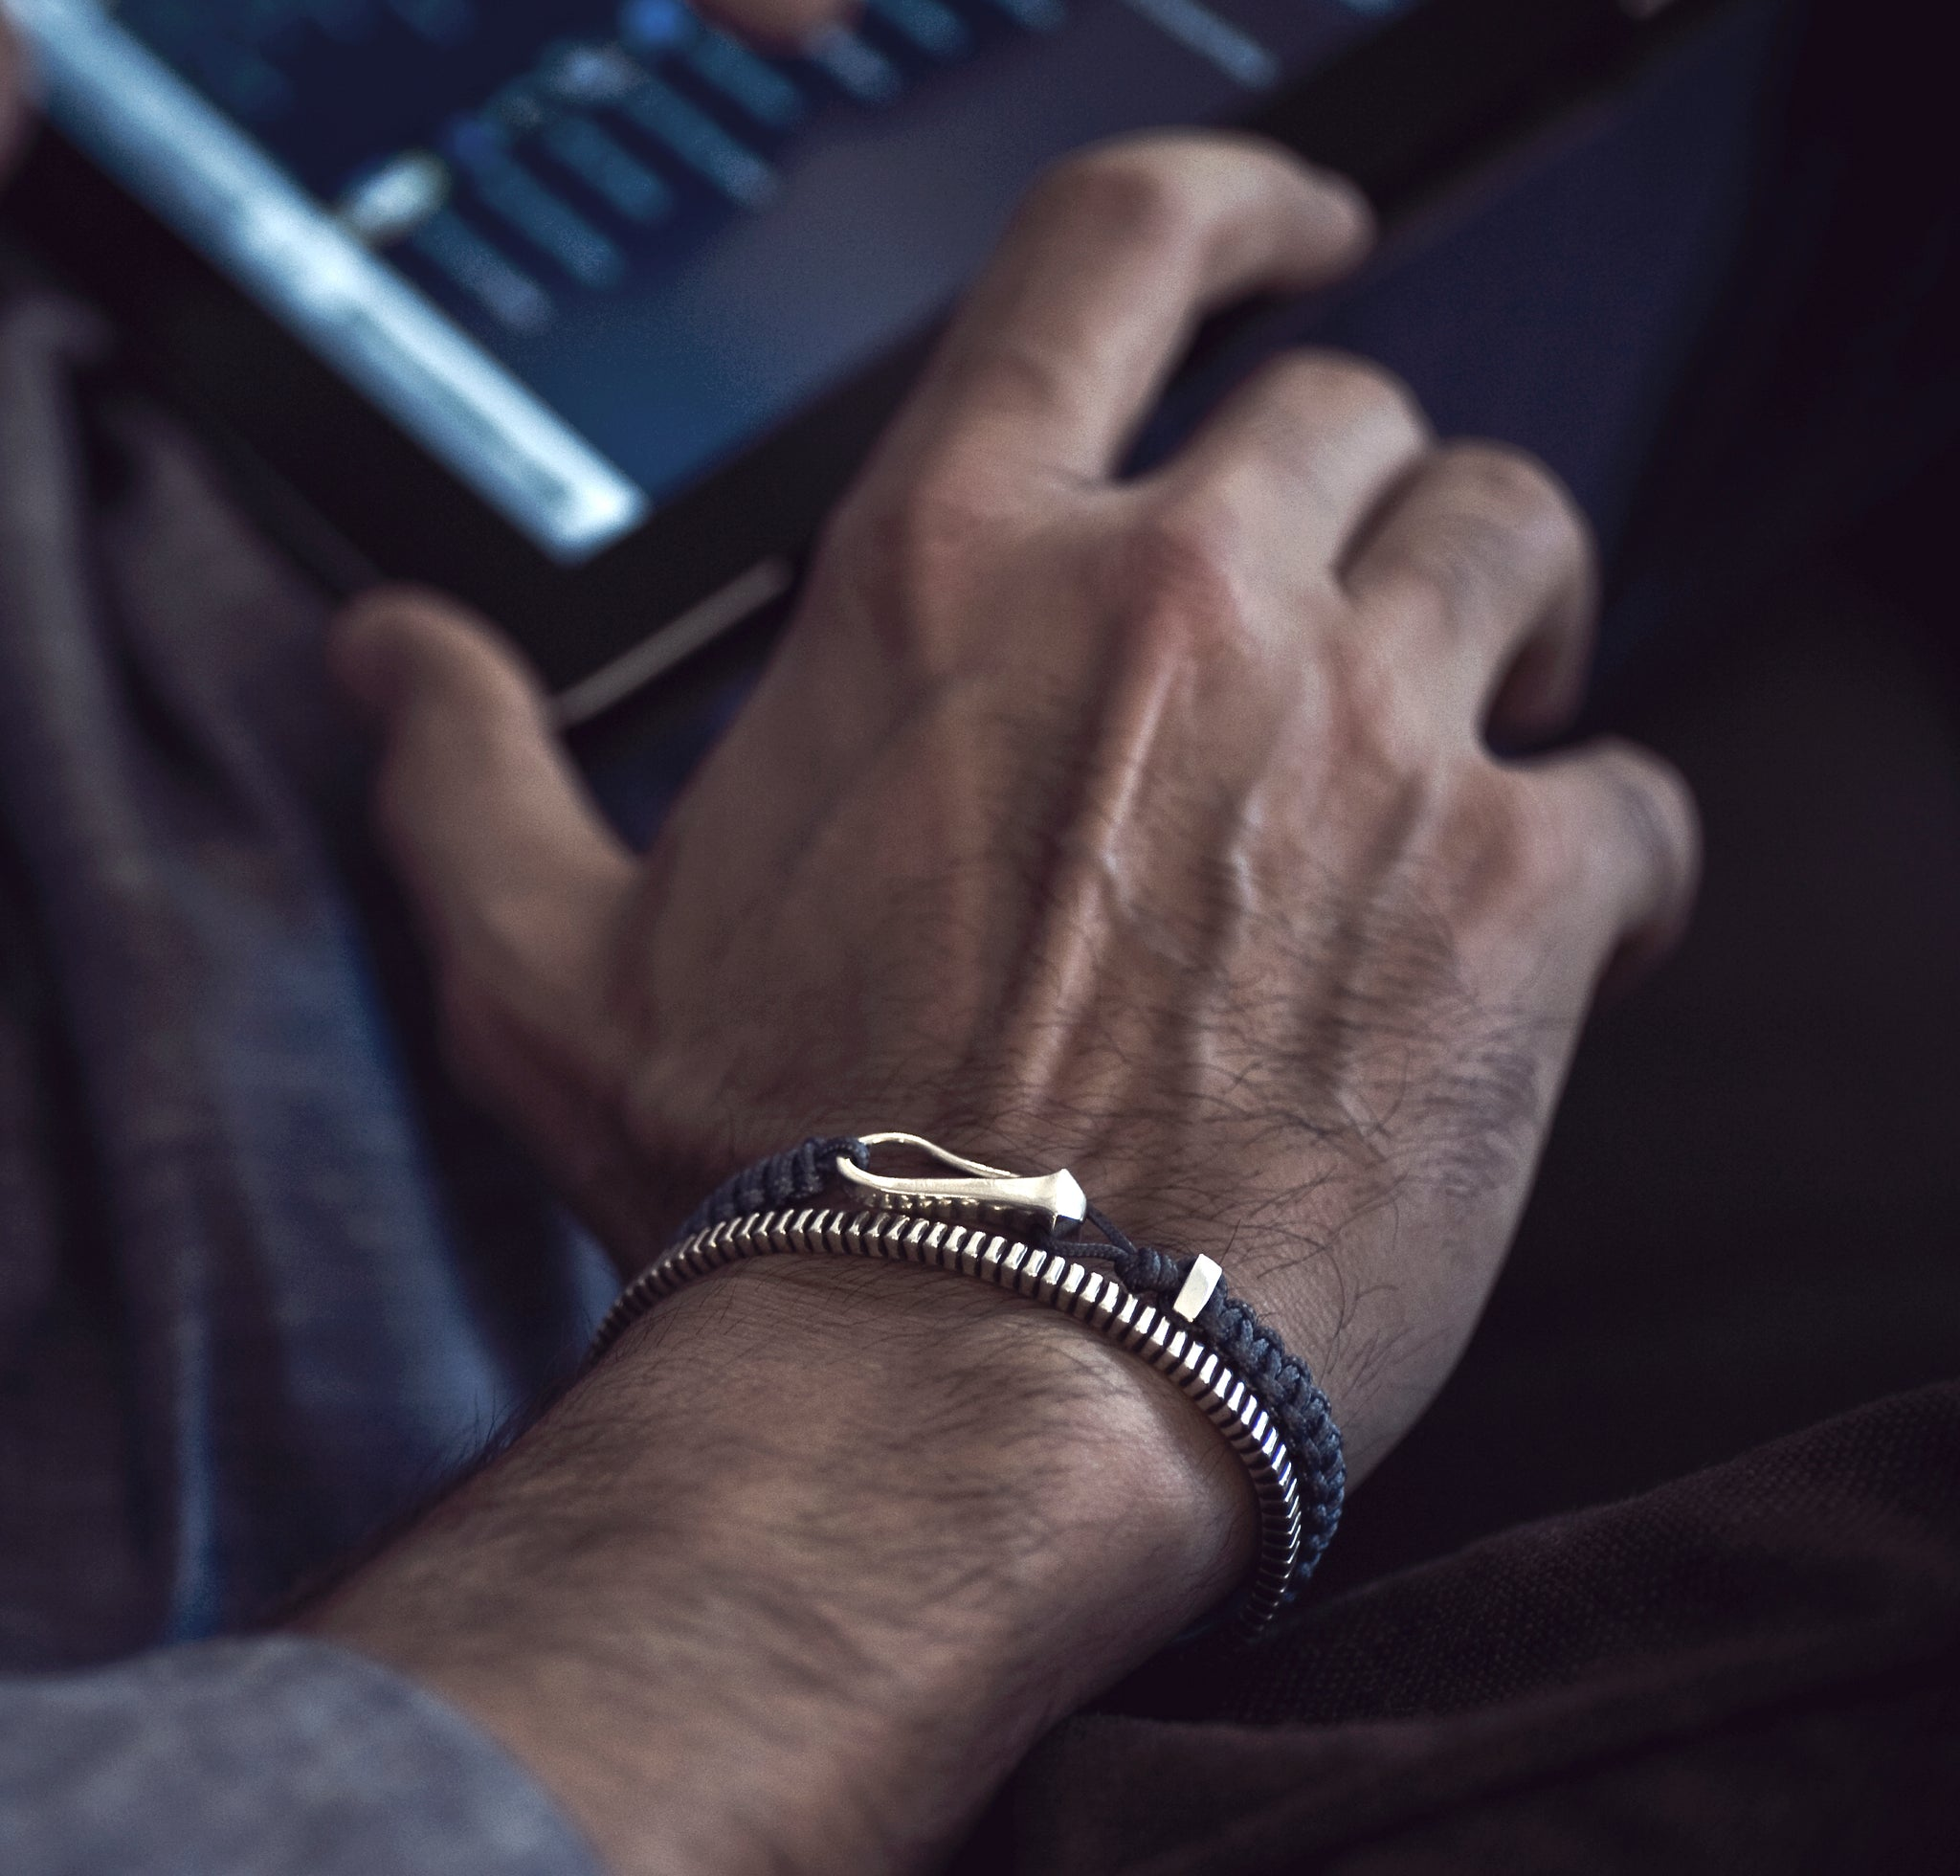 wrist of a man wearing a hook bracelet with a sterling silver ribbed cuff bracelet in sterling silver